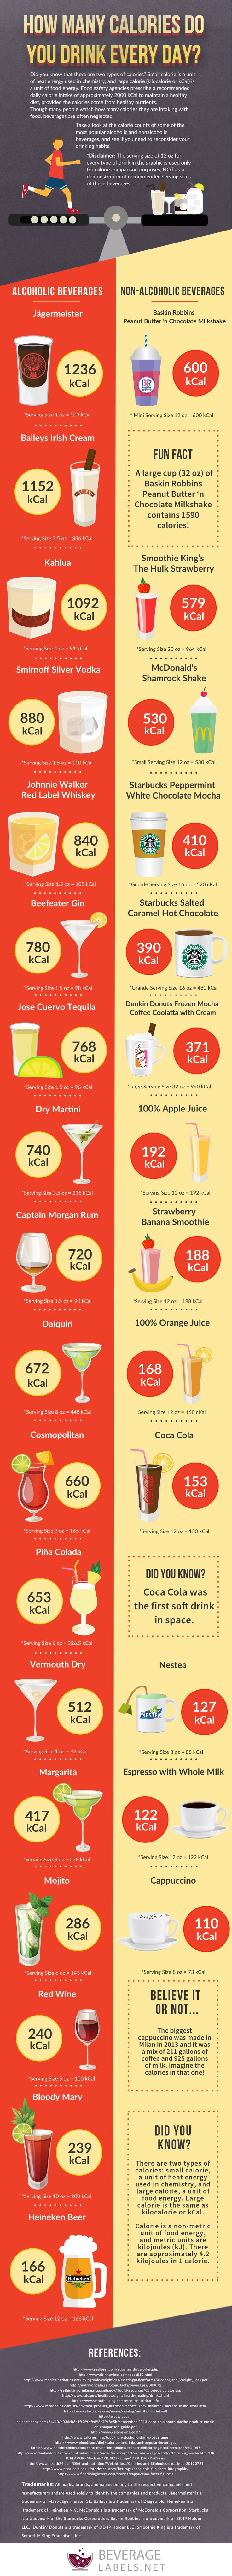 How Many Calories do you Drink Every day? #infographic #Health #Food